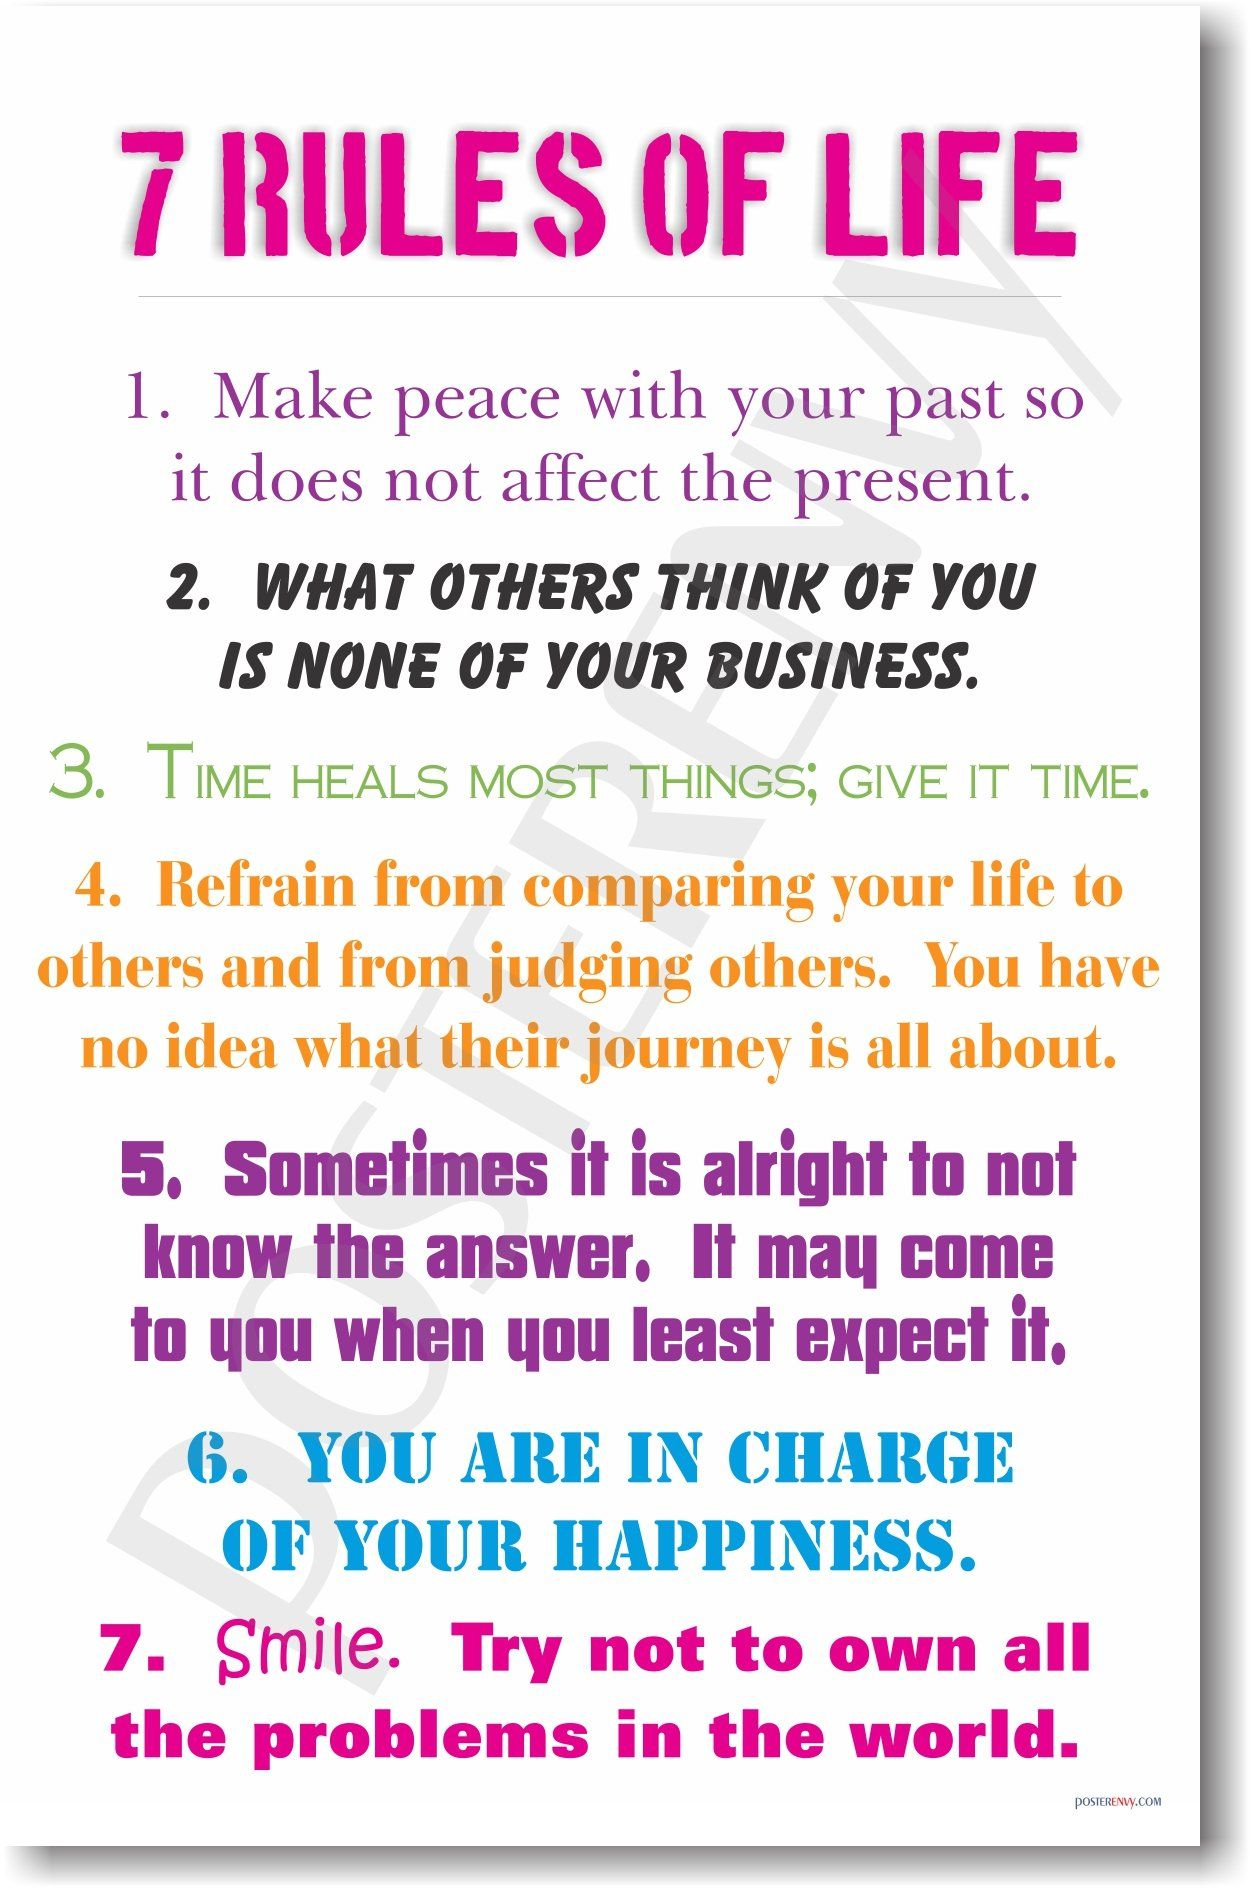 Amazon.com: 7 Rules of Life - NEW Classroom Motivational Poster ...